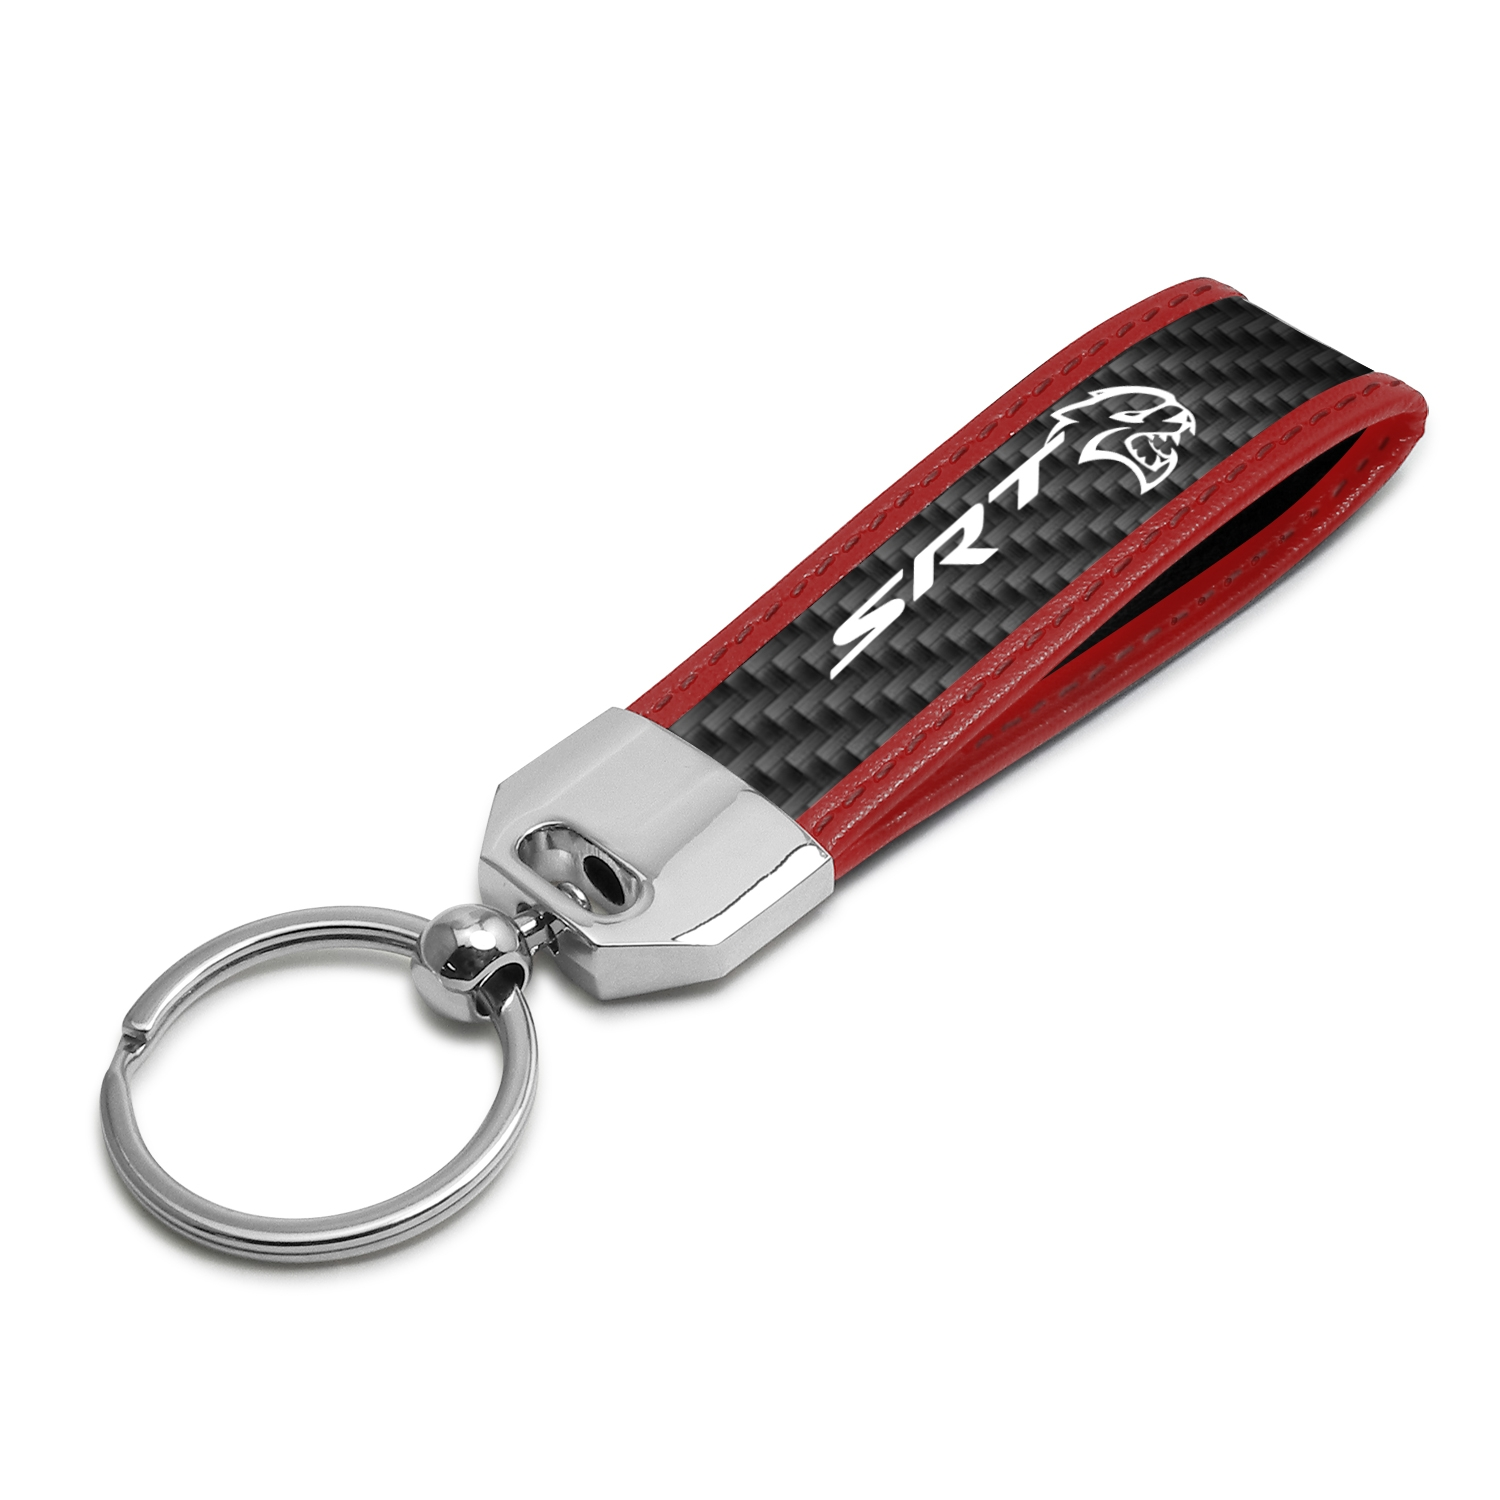 Dodge SRT Hellcat Real Carbon Fiber Strap Key Chain with Red Edge